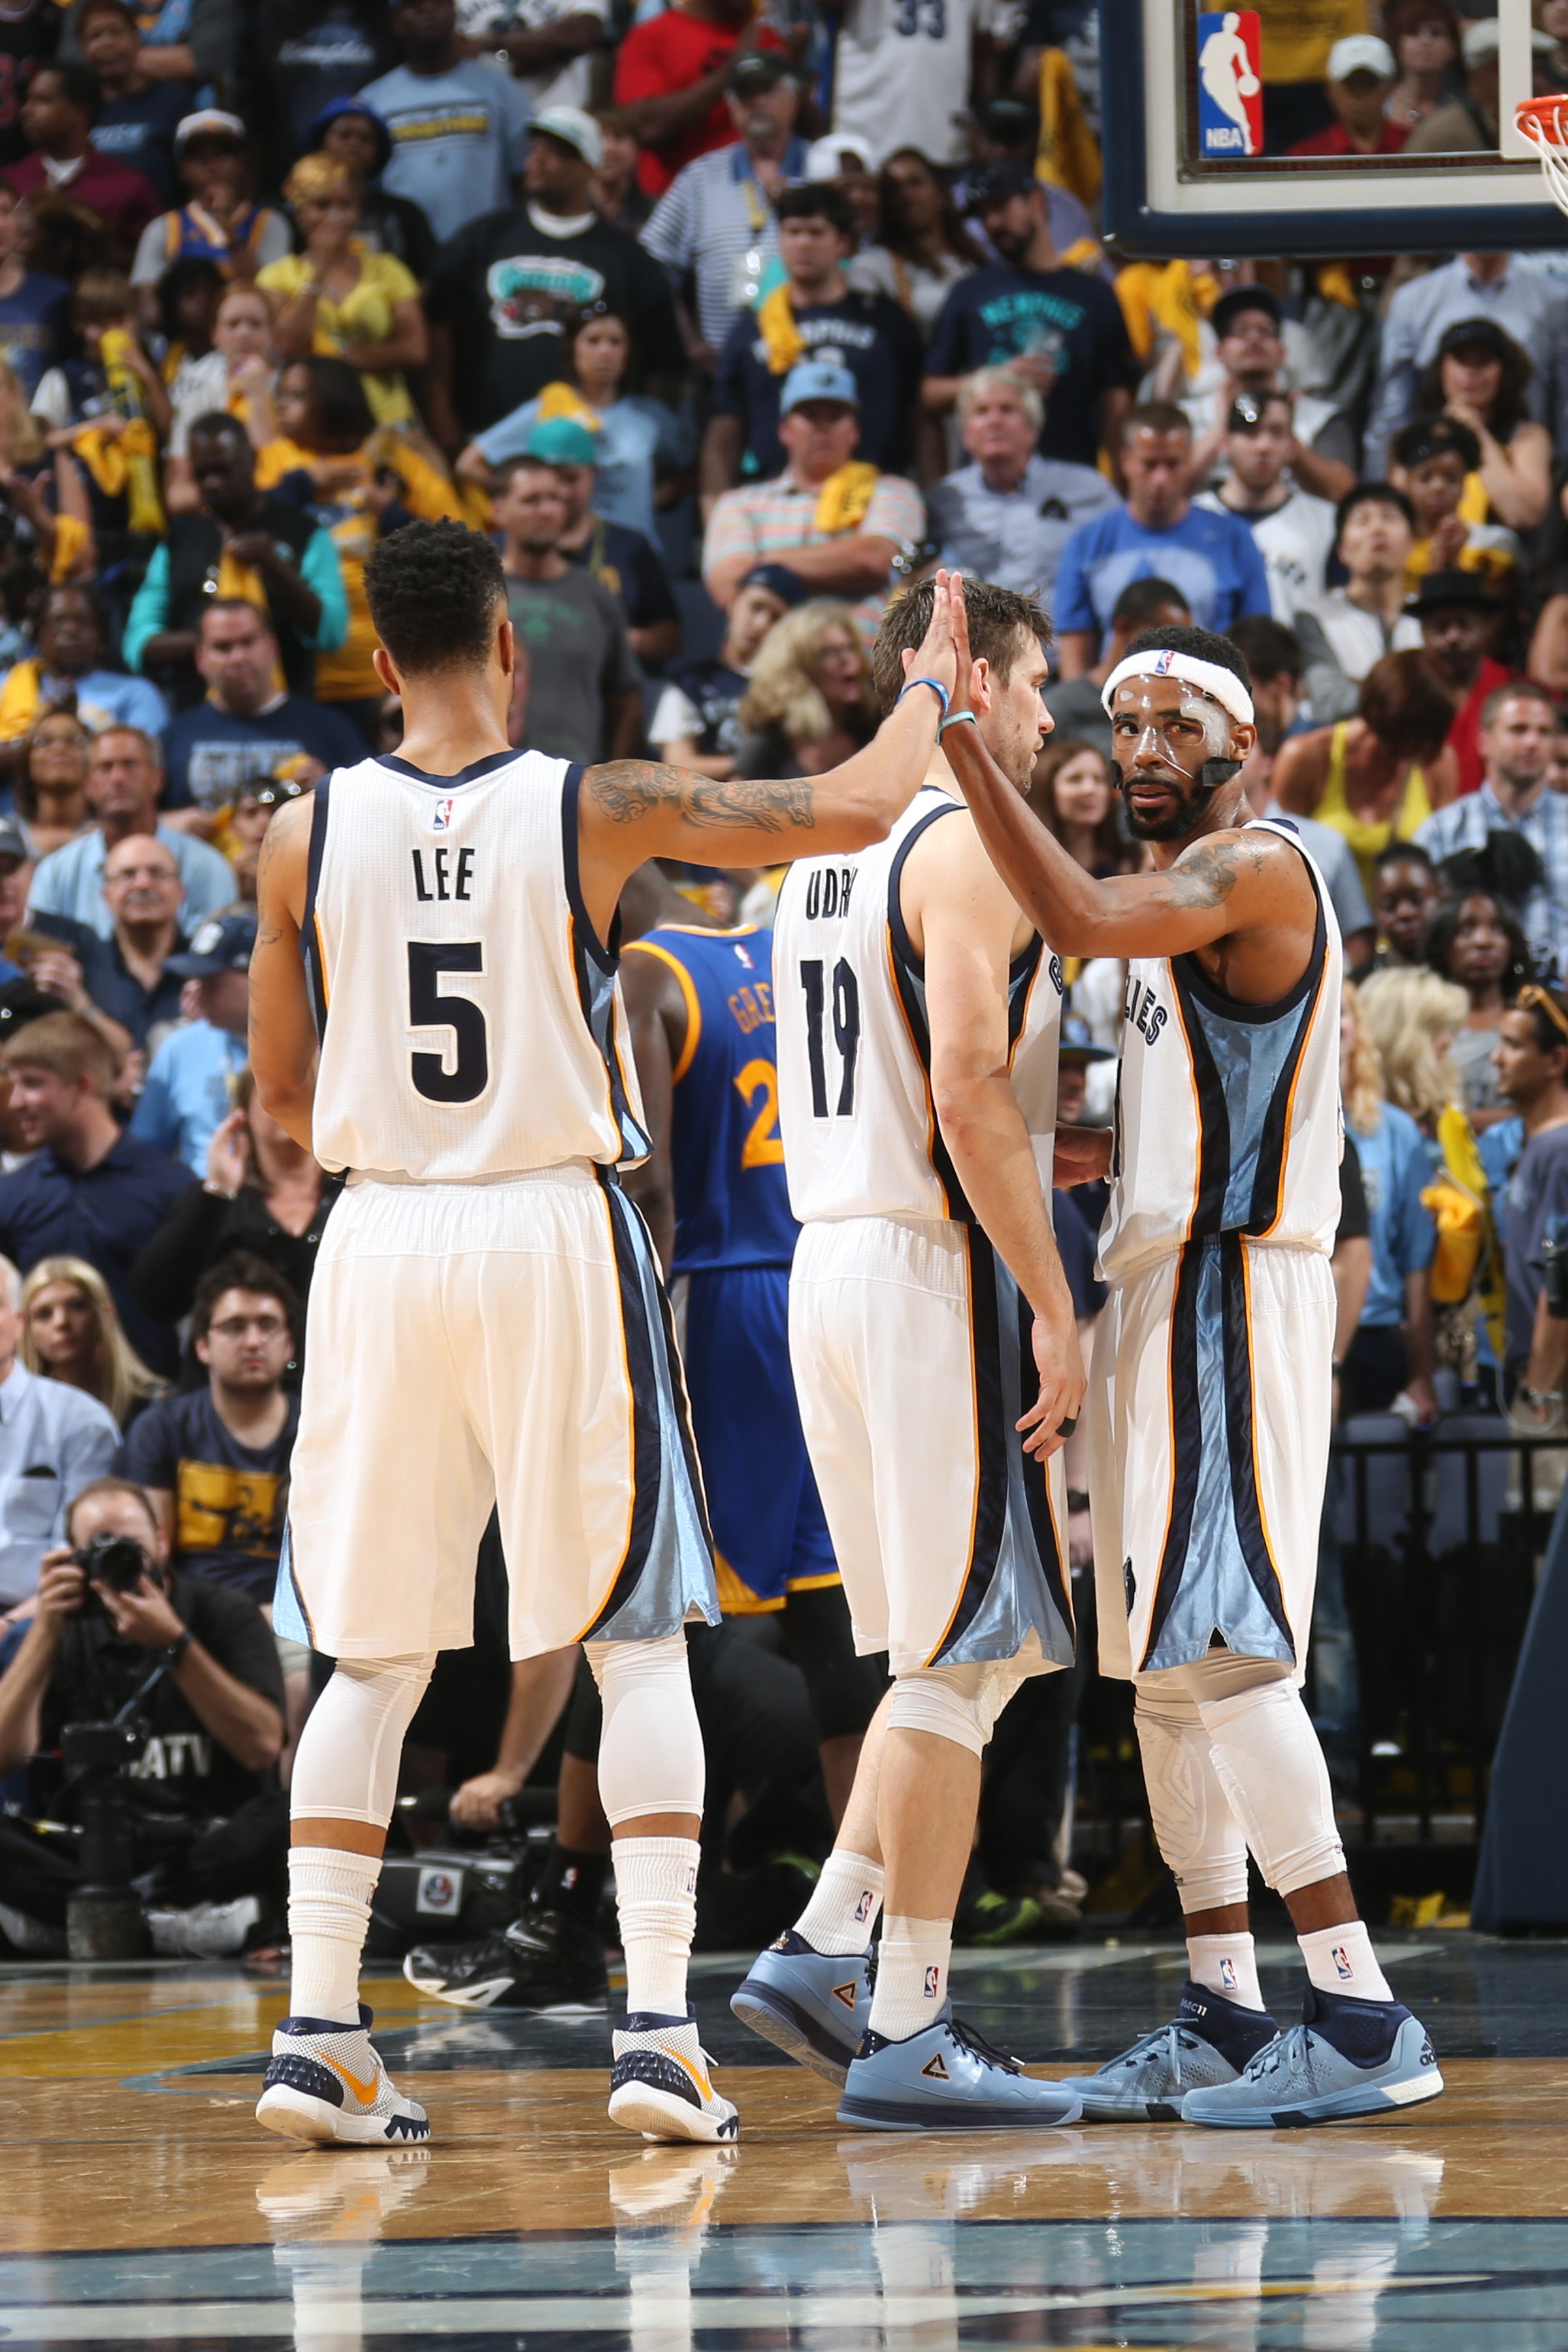 MEMPHIS, TN - MAY 9: Mike Conley #11 high fives Courtney Lee #5 of the Memphis Grizzlies during Game Three of the Western Conference Semifinals against the Golden State Warriors during the NBA Playoffs on May 9, 2015 at FedExForum in Memphis, Tennessee.